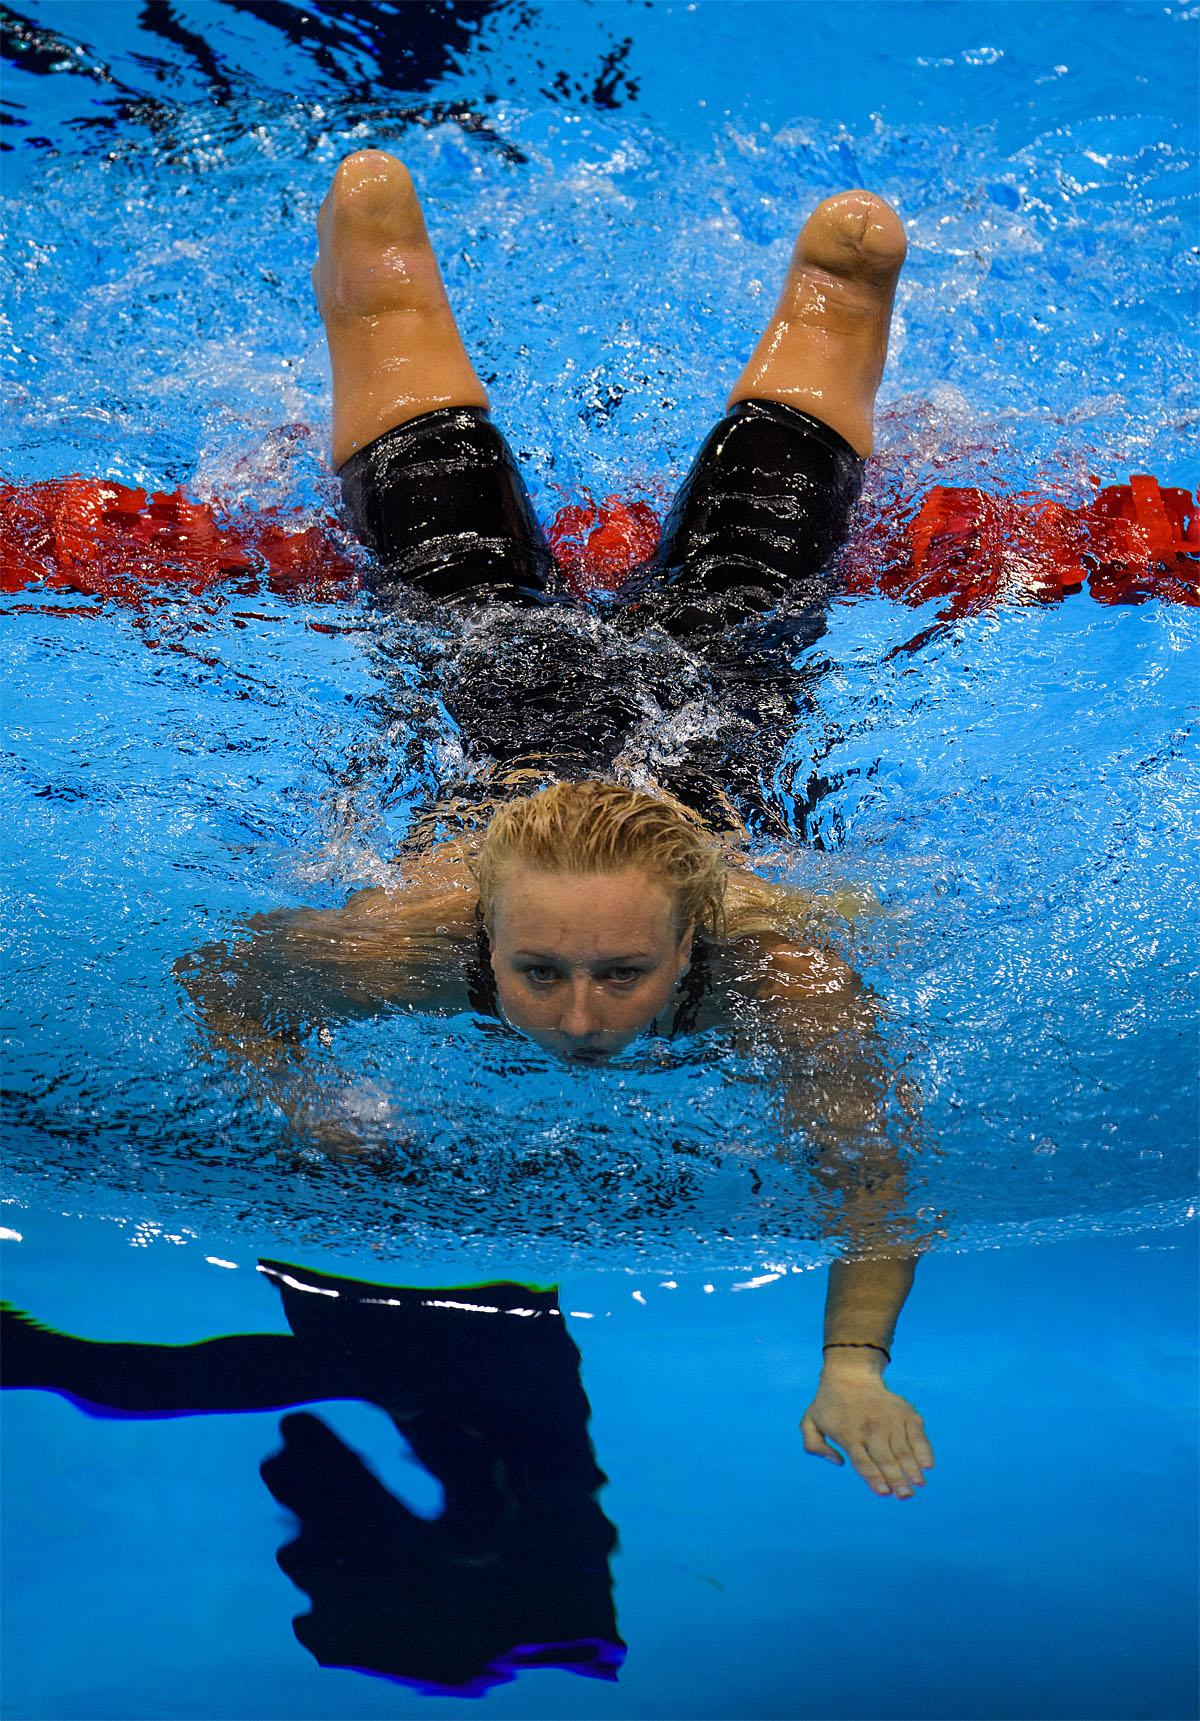 In this photo provided by the IOC, Jessica Long of the United States, swims in the pool after competing in the women's 100-meter butterfly - S8 heat 1 swimming event at the Olympic Aquatics Stadium during the Paralympic Games, in Rio de Janeiro, Brazil, Friday, Sept. 9, 2016. (Bob Martin/OIS,IOC via AP)